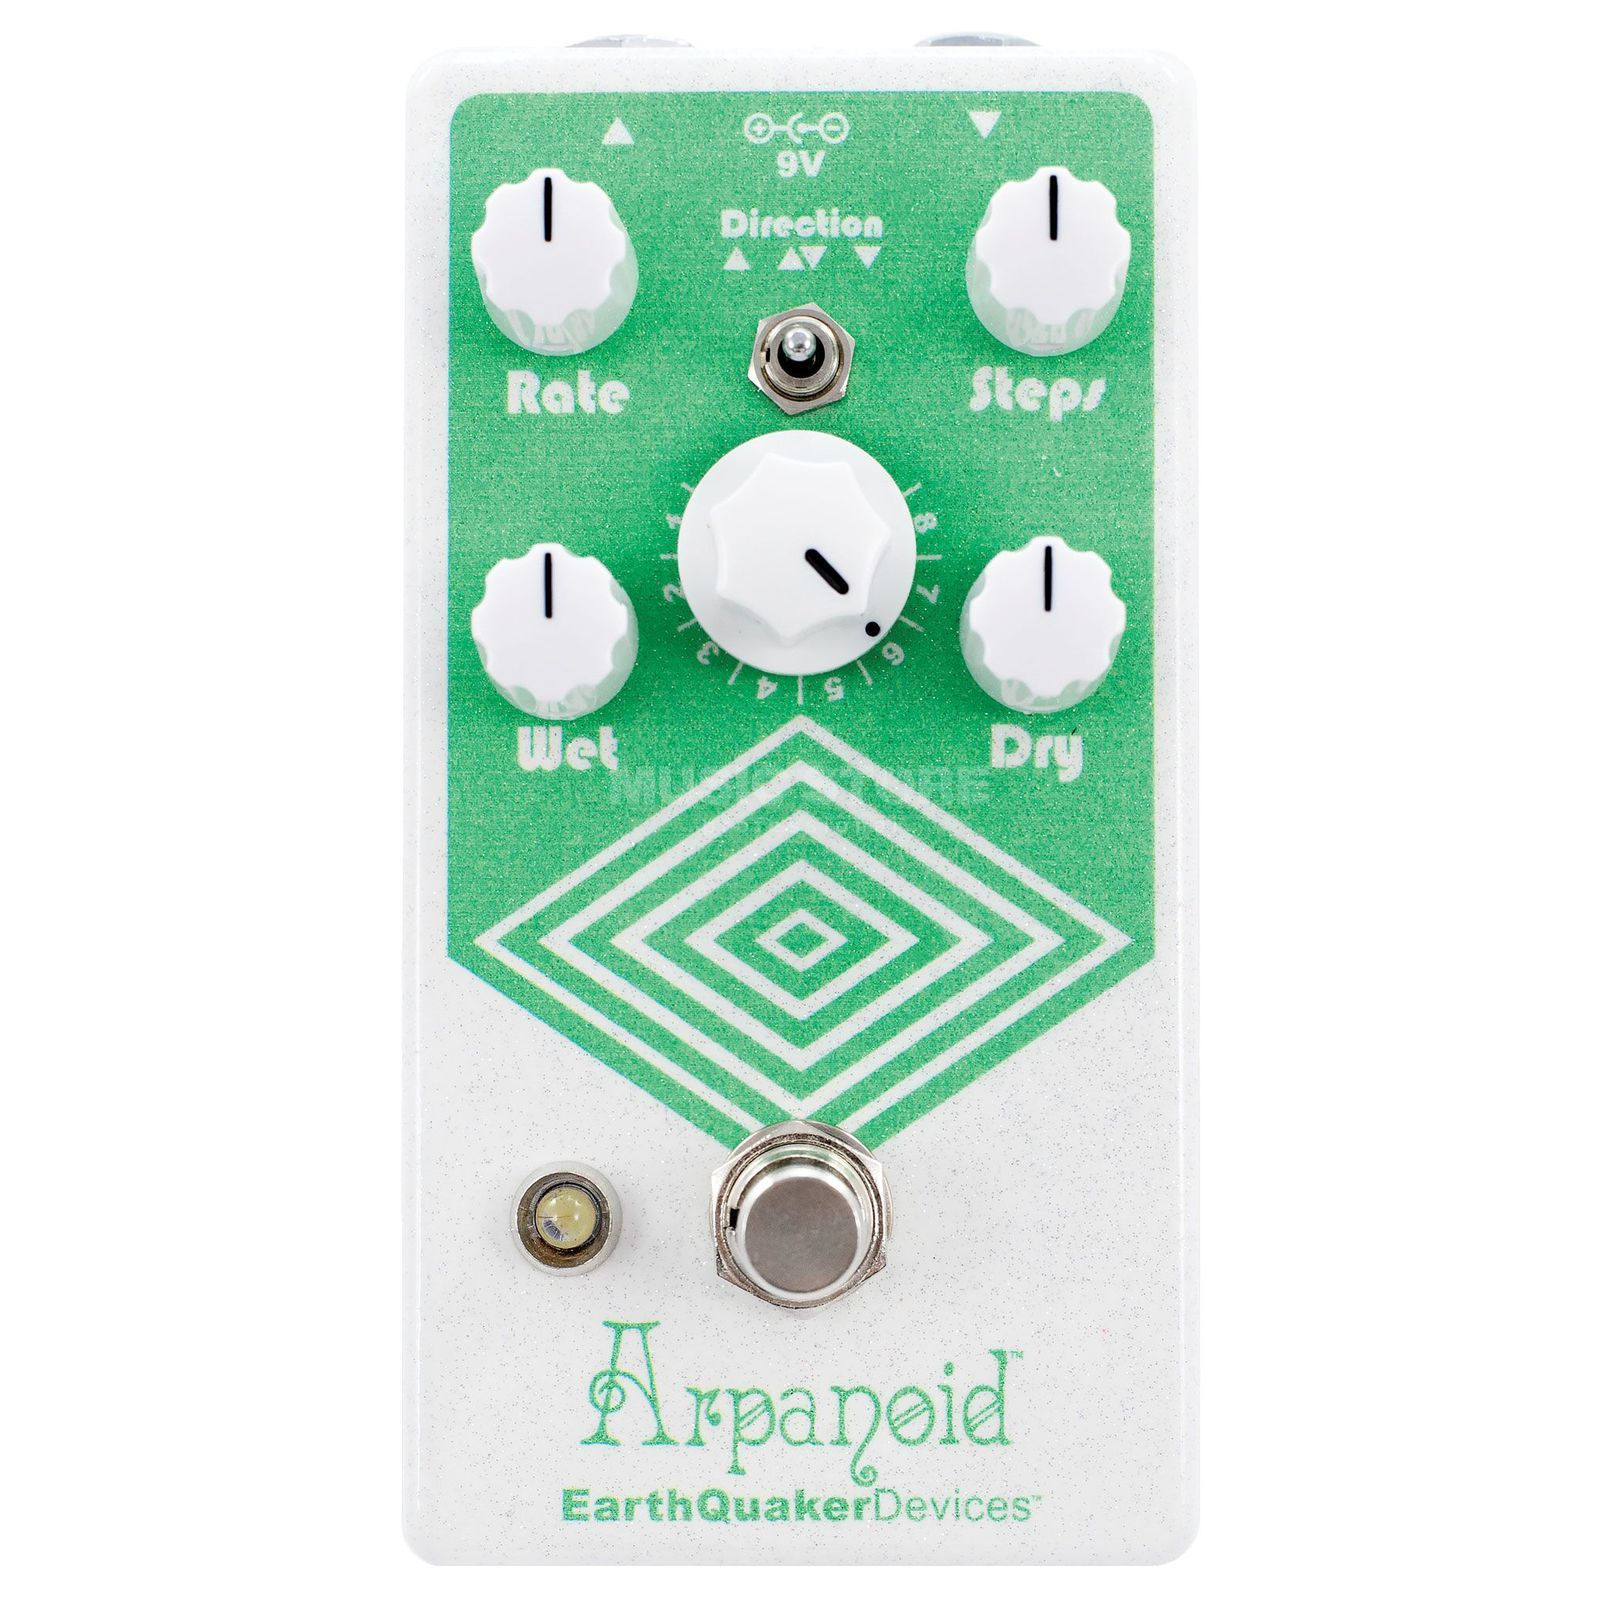 Earthquaker Devices Arpanoid V2 Product Image